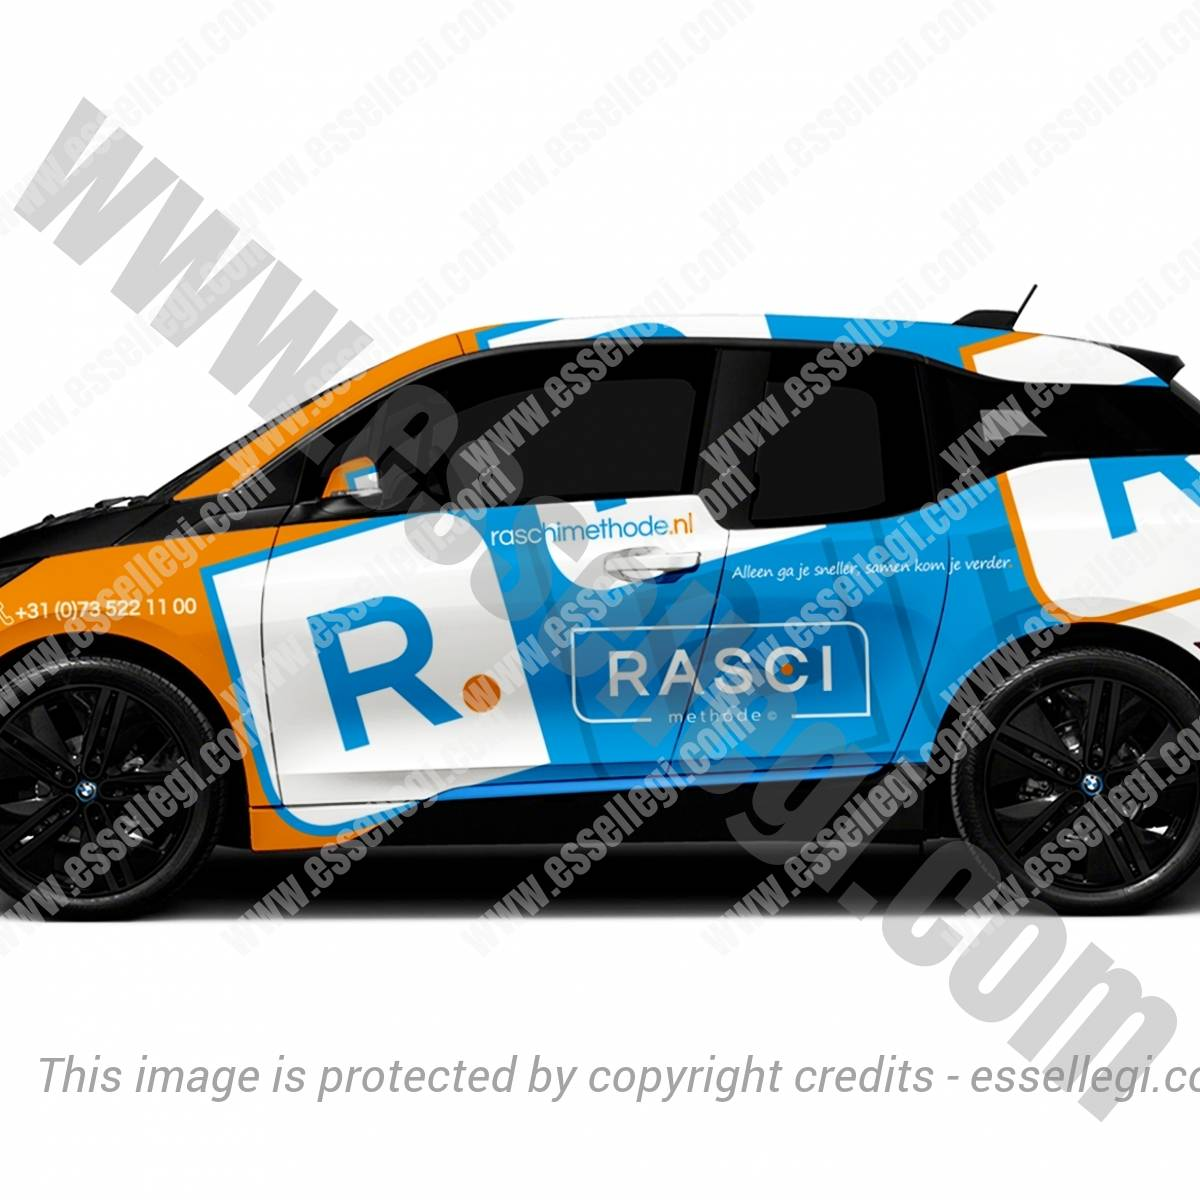 RASCI METHODE | CAR WRAP DESIGN 🇳🇱